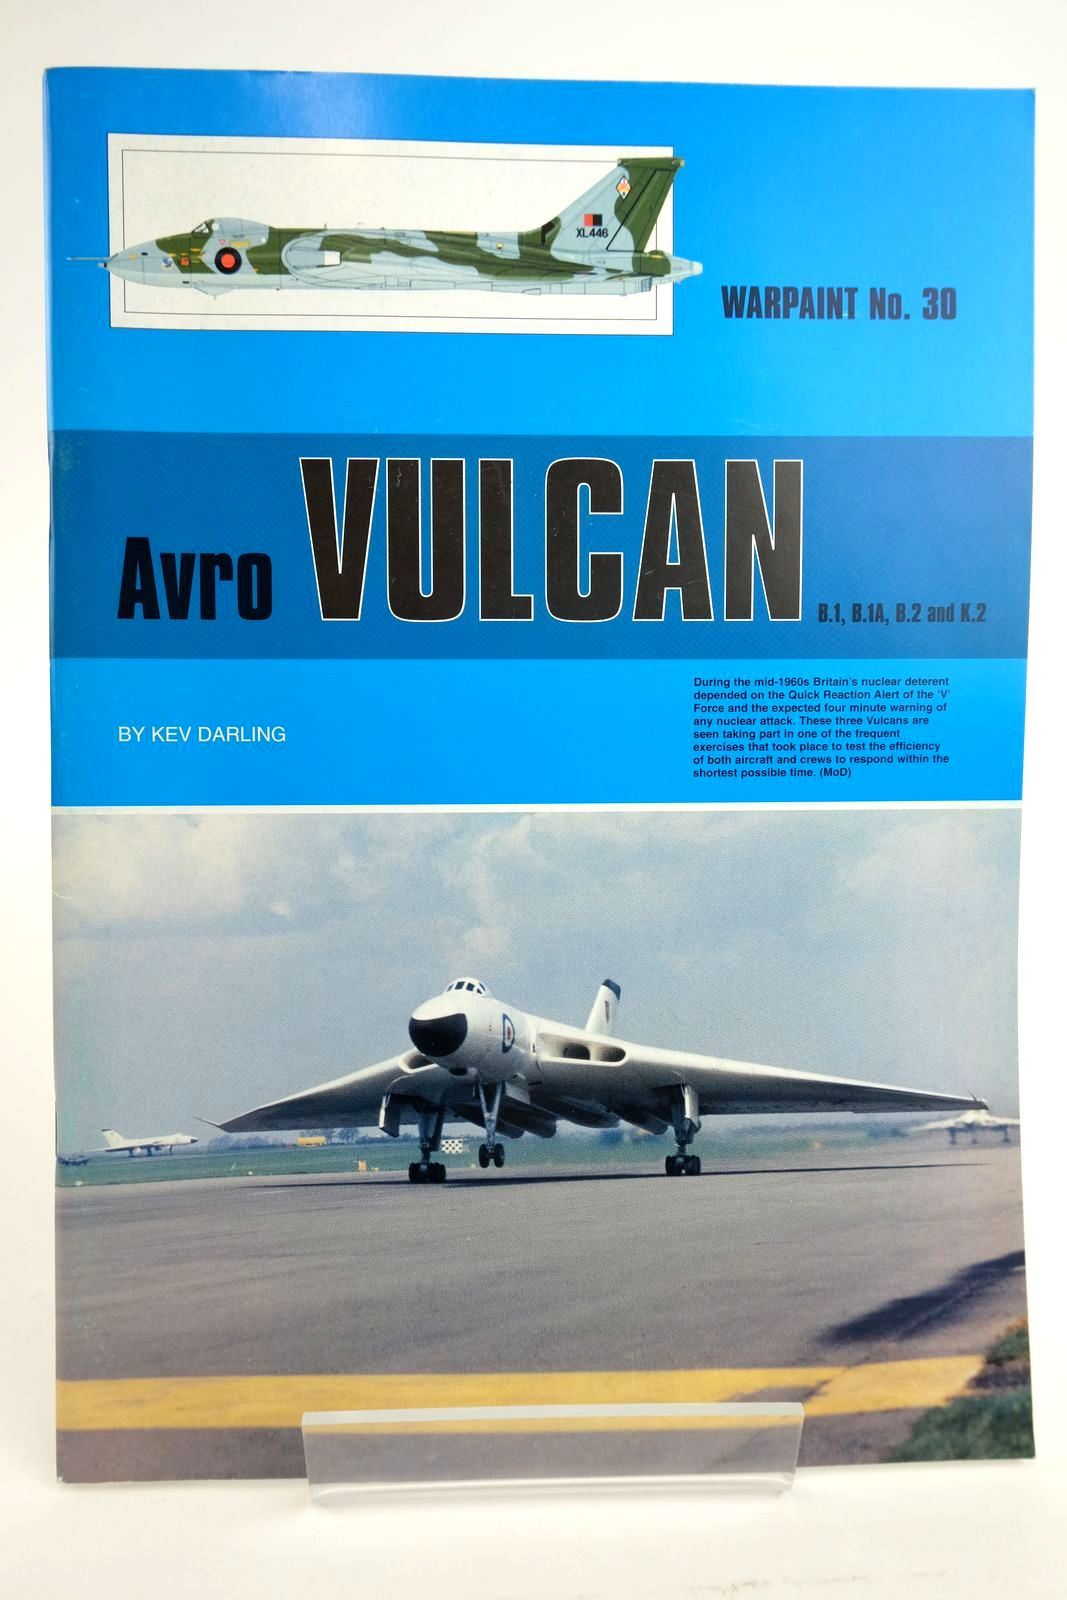 Photo of AVRO VULCAN B.1, B.1A, B.2 AND K.2 written by Darling, Kev published by Hall Park Books Ltd. (STOCK CODE: 2135048)  for sale by Stella & Rose's Books